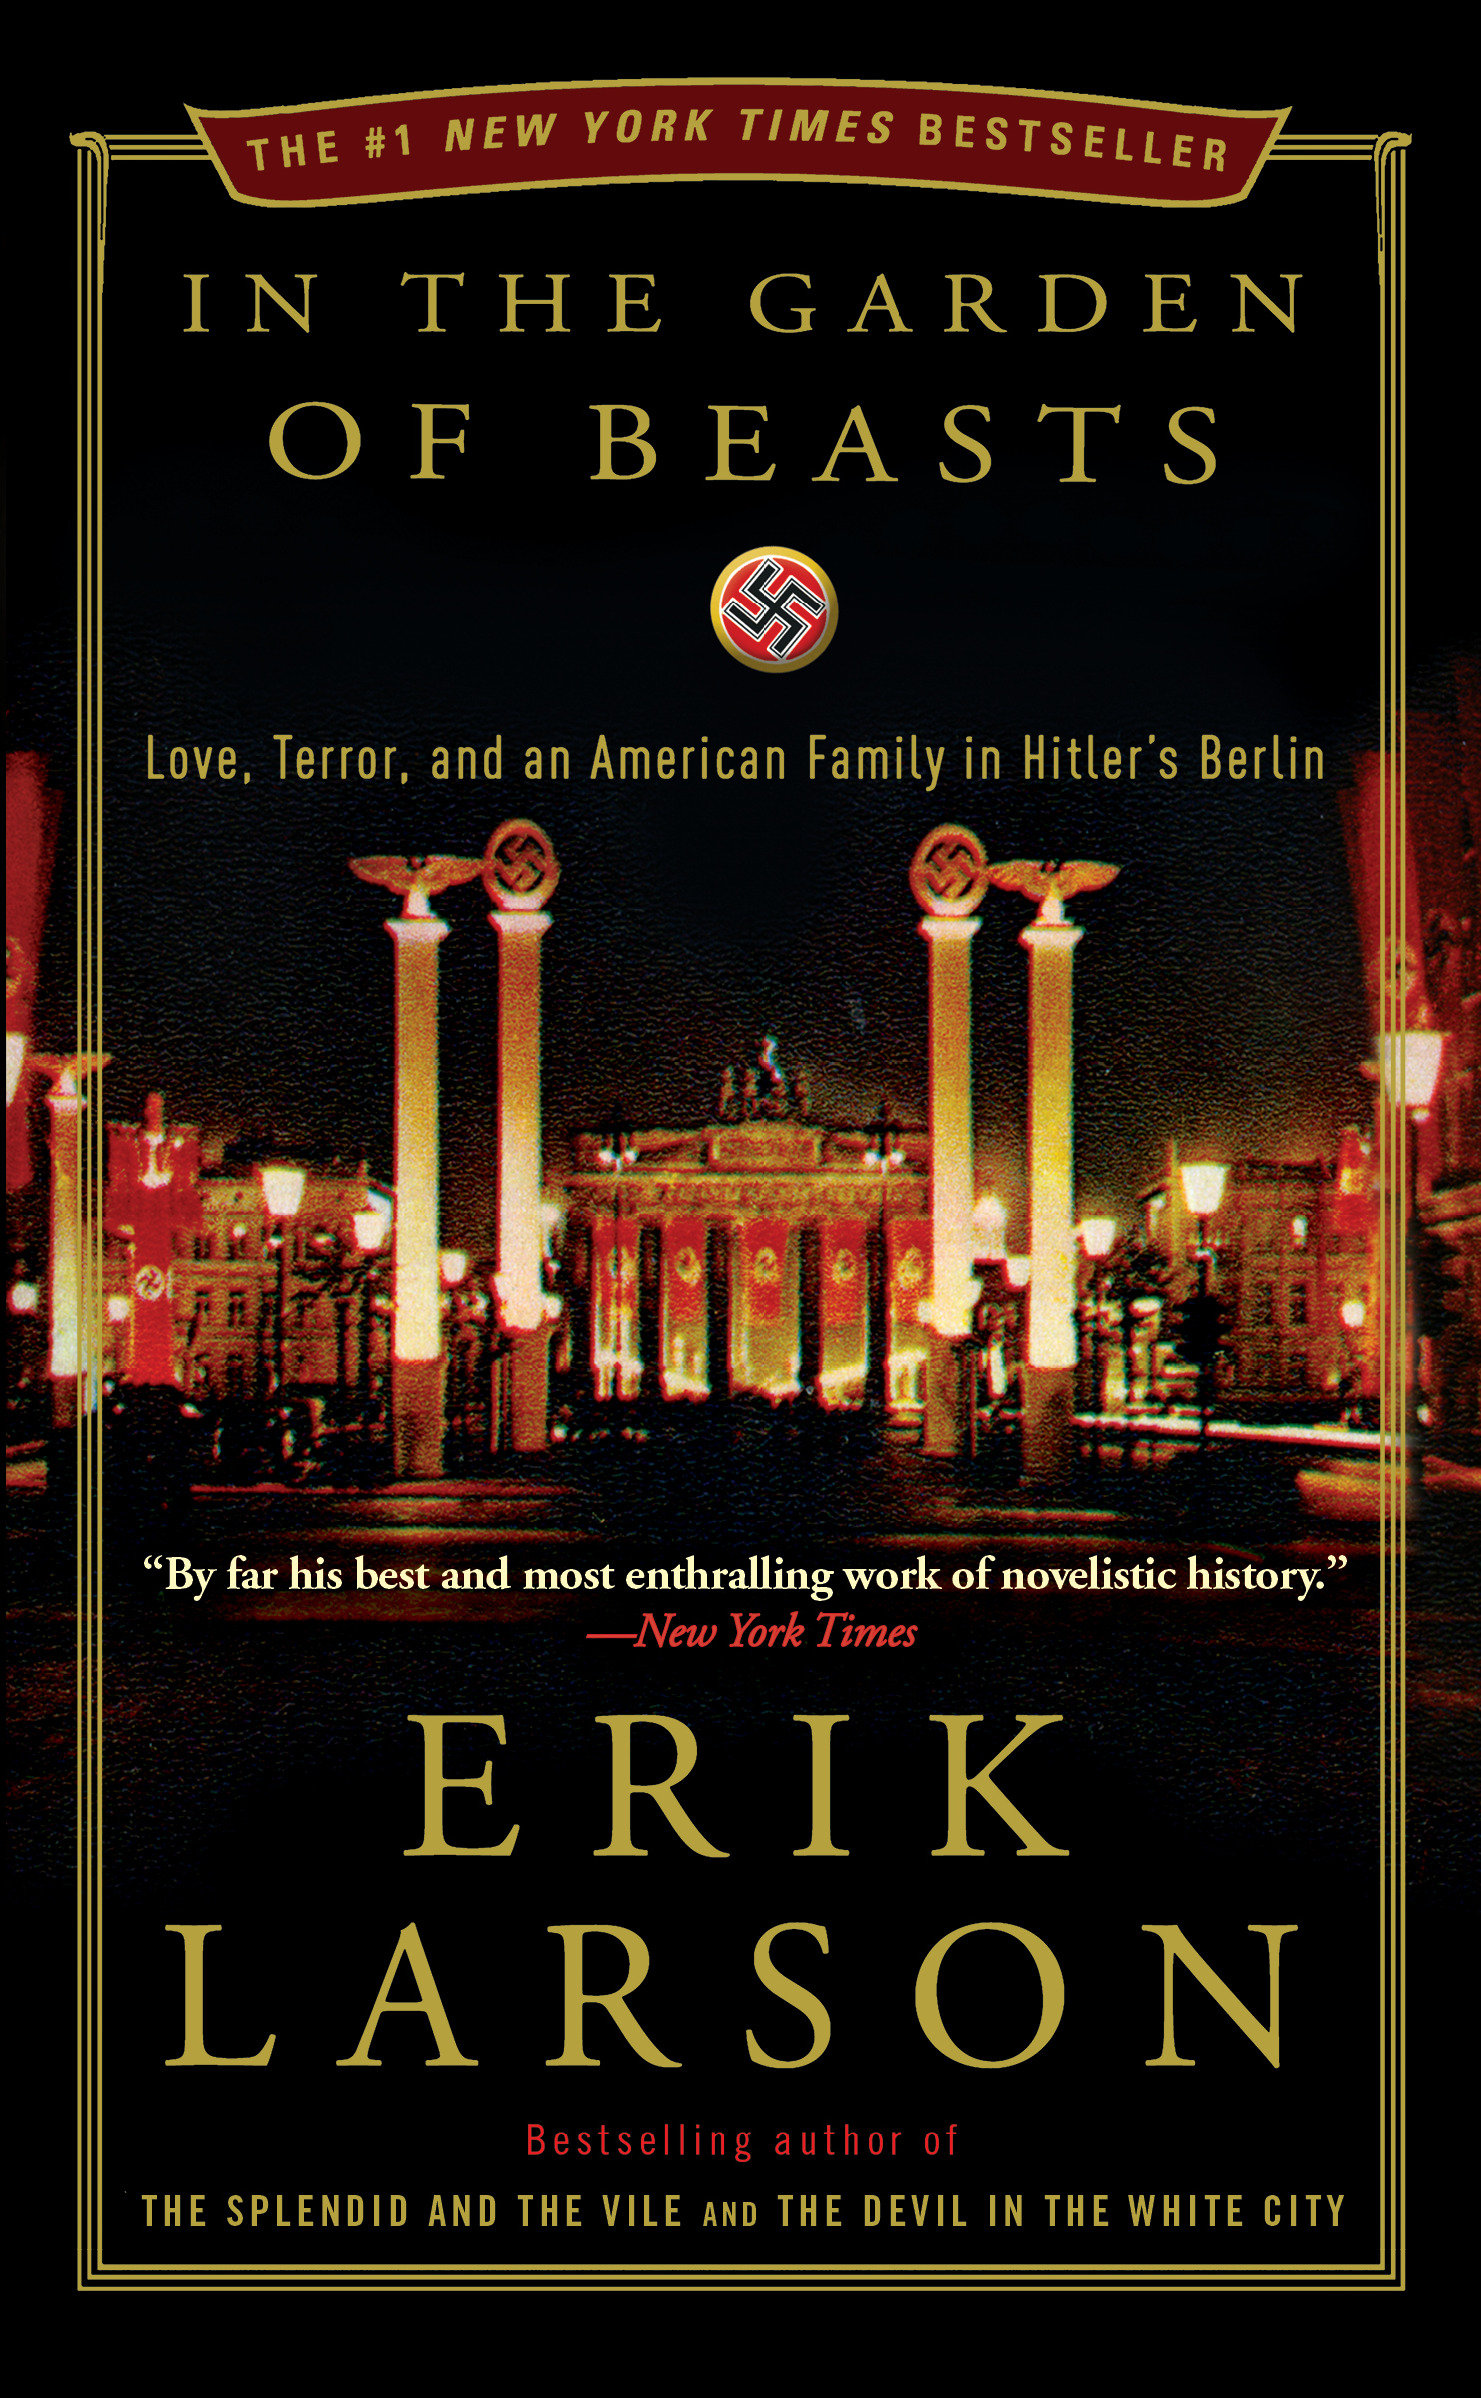 In the Garden of Beasts Love, Terror, and an American Family in Hitler's Berlin